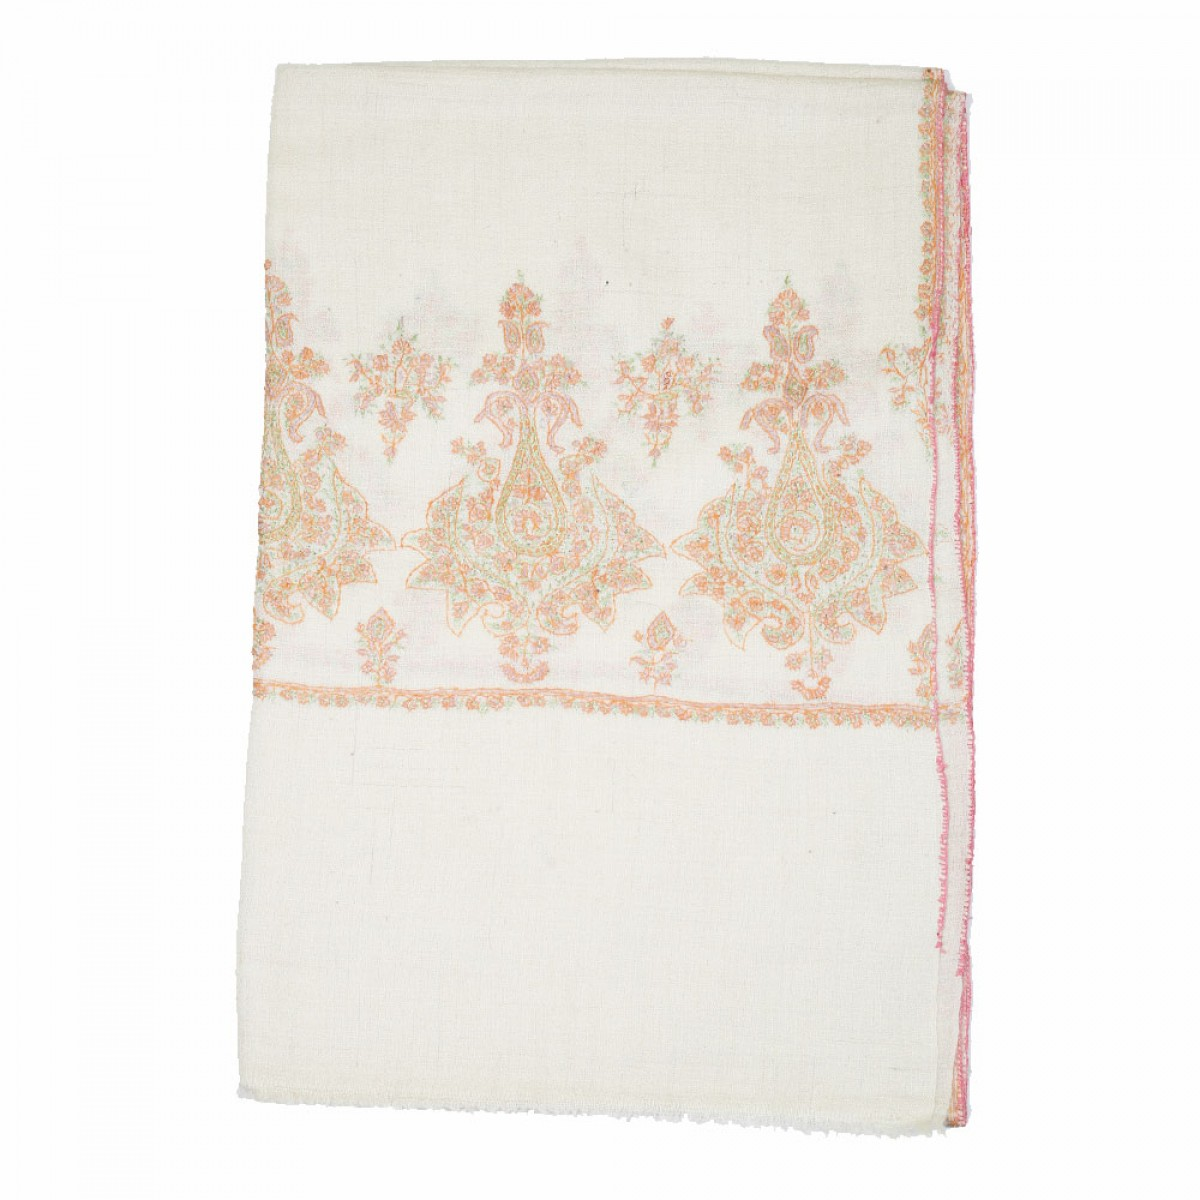 Embroidered Handloom Pashmina Stole - Off White